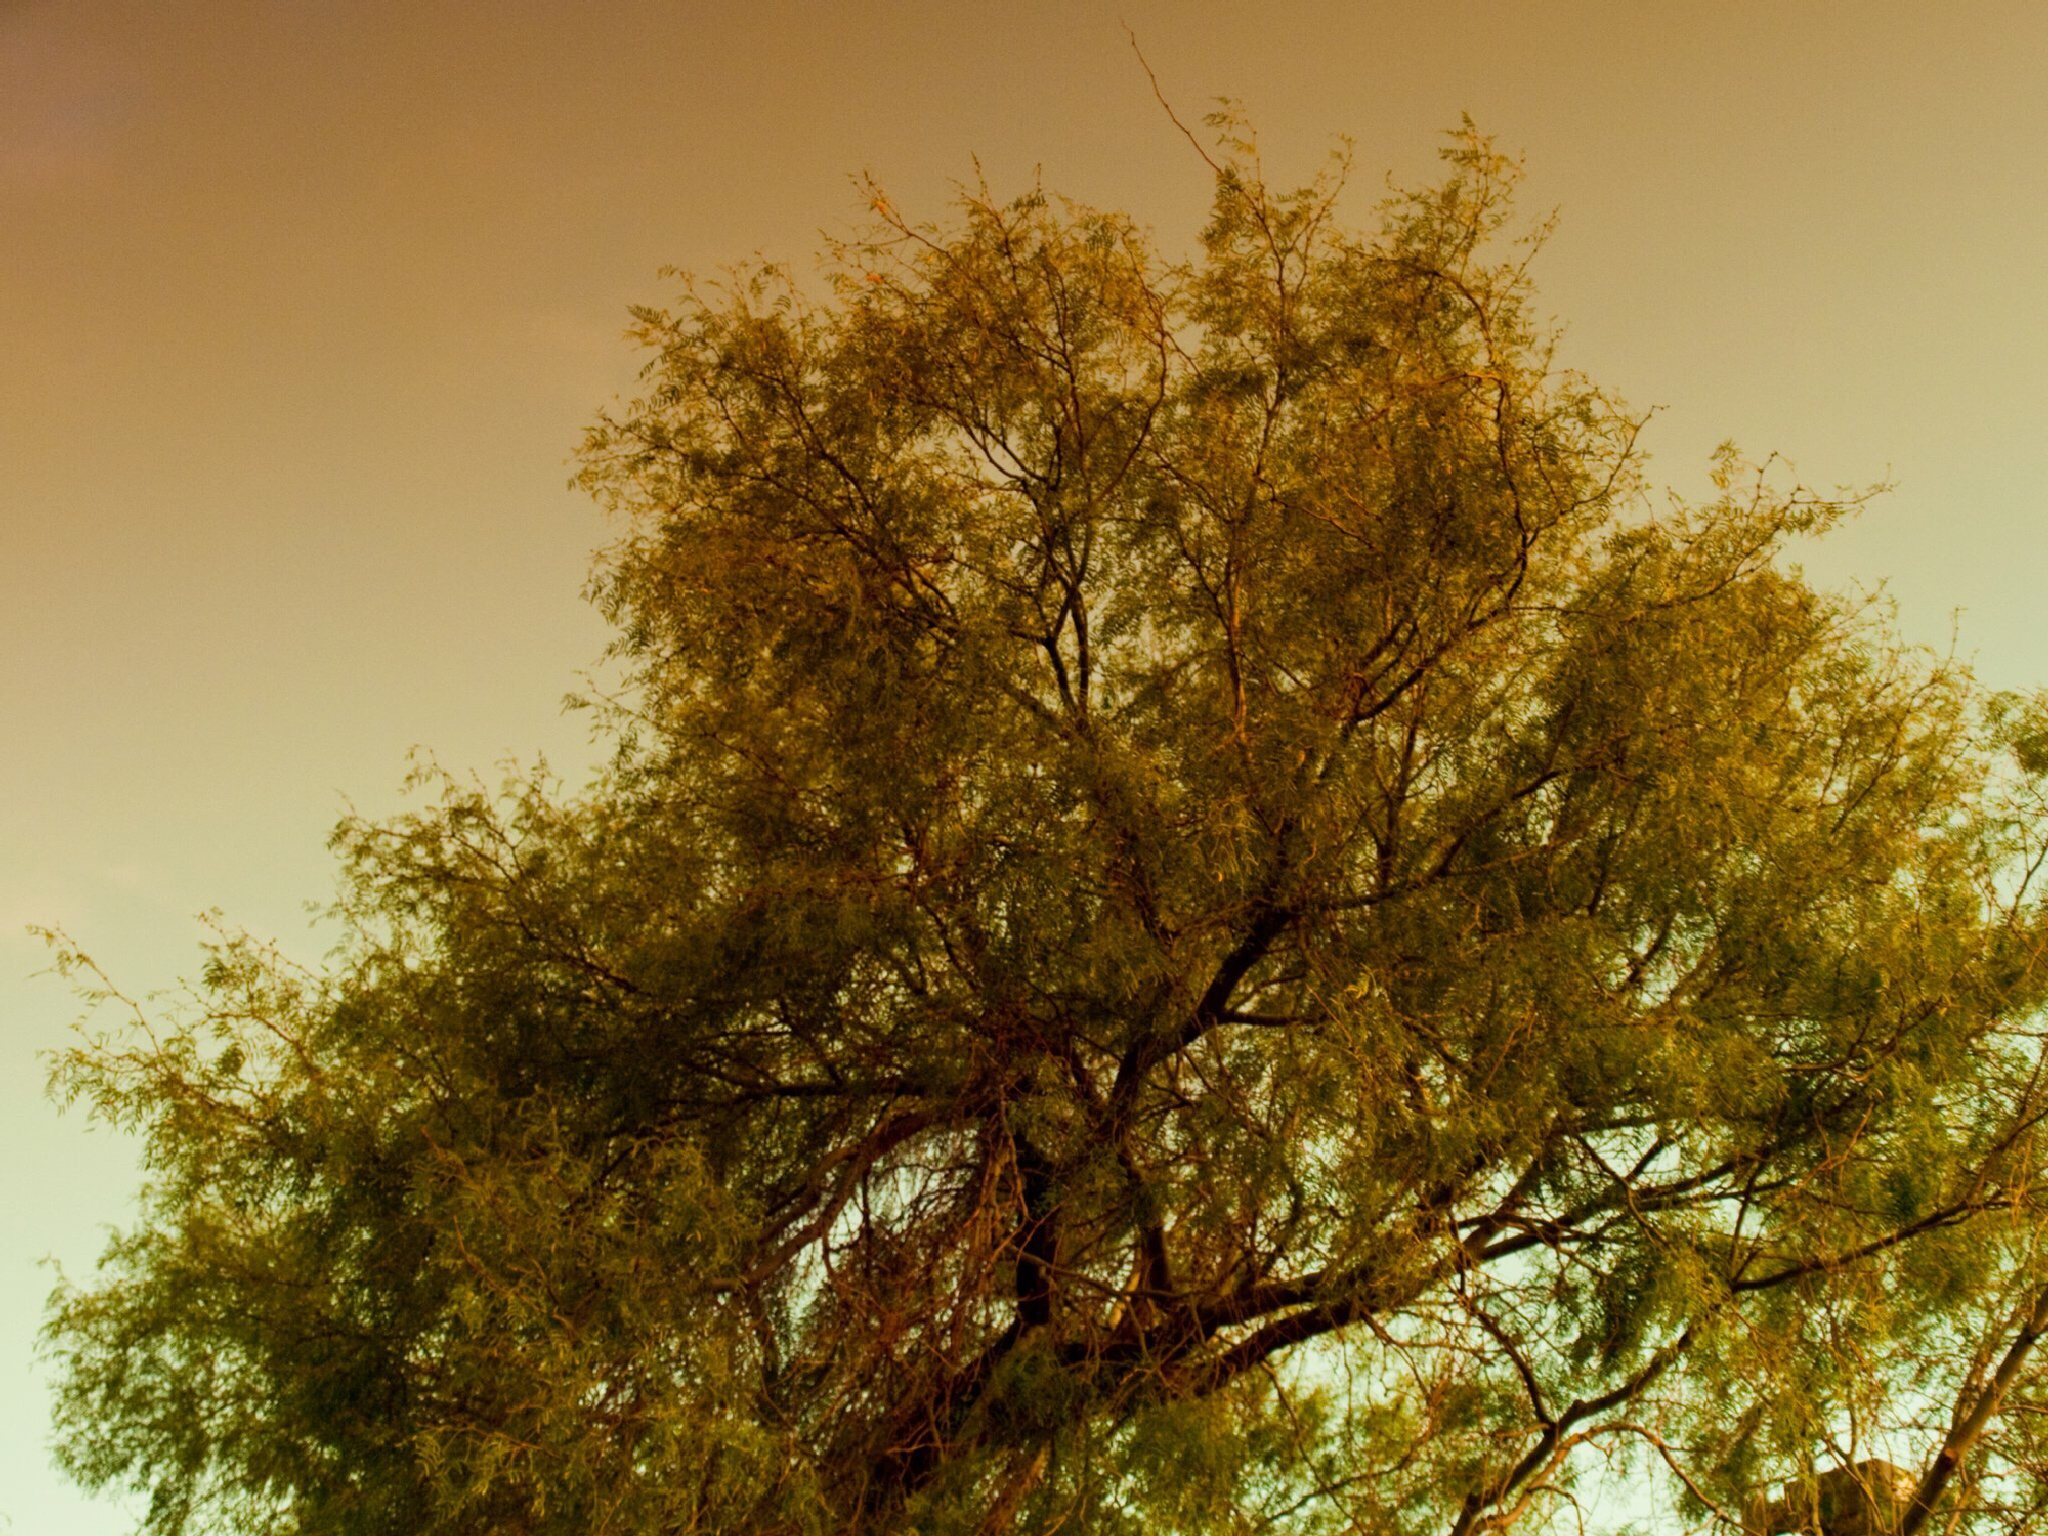 The Tree by Robert Brown